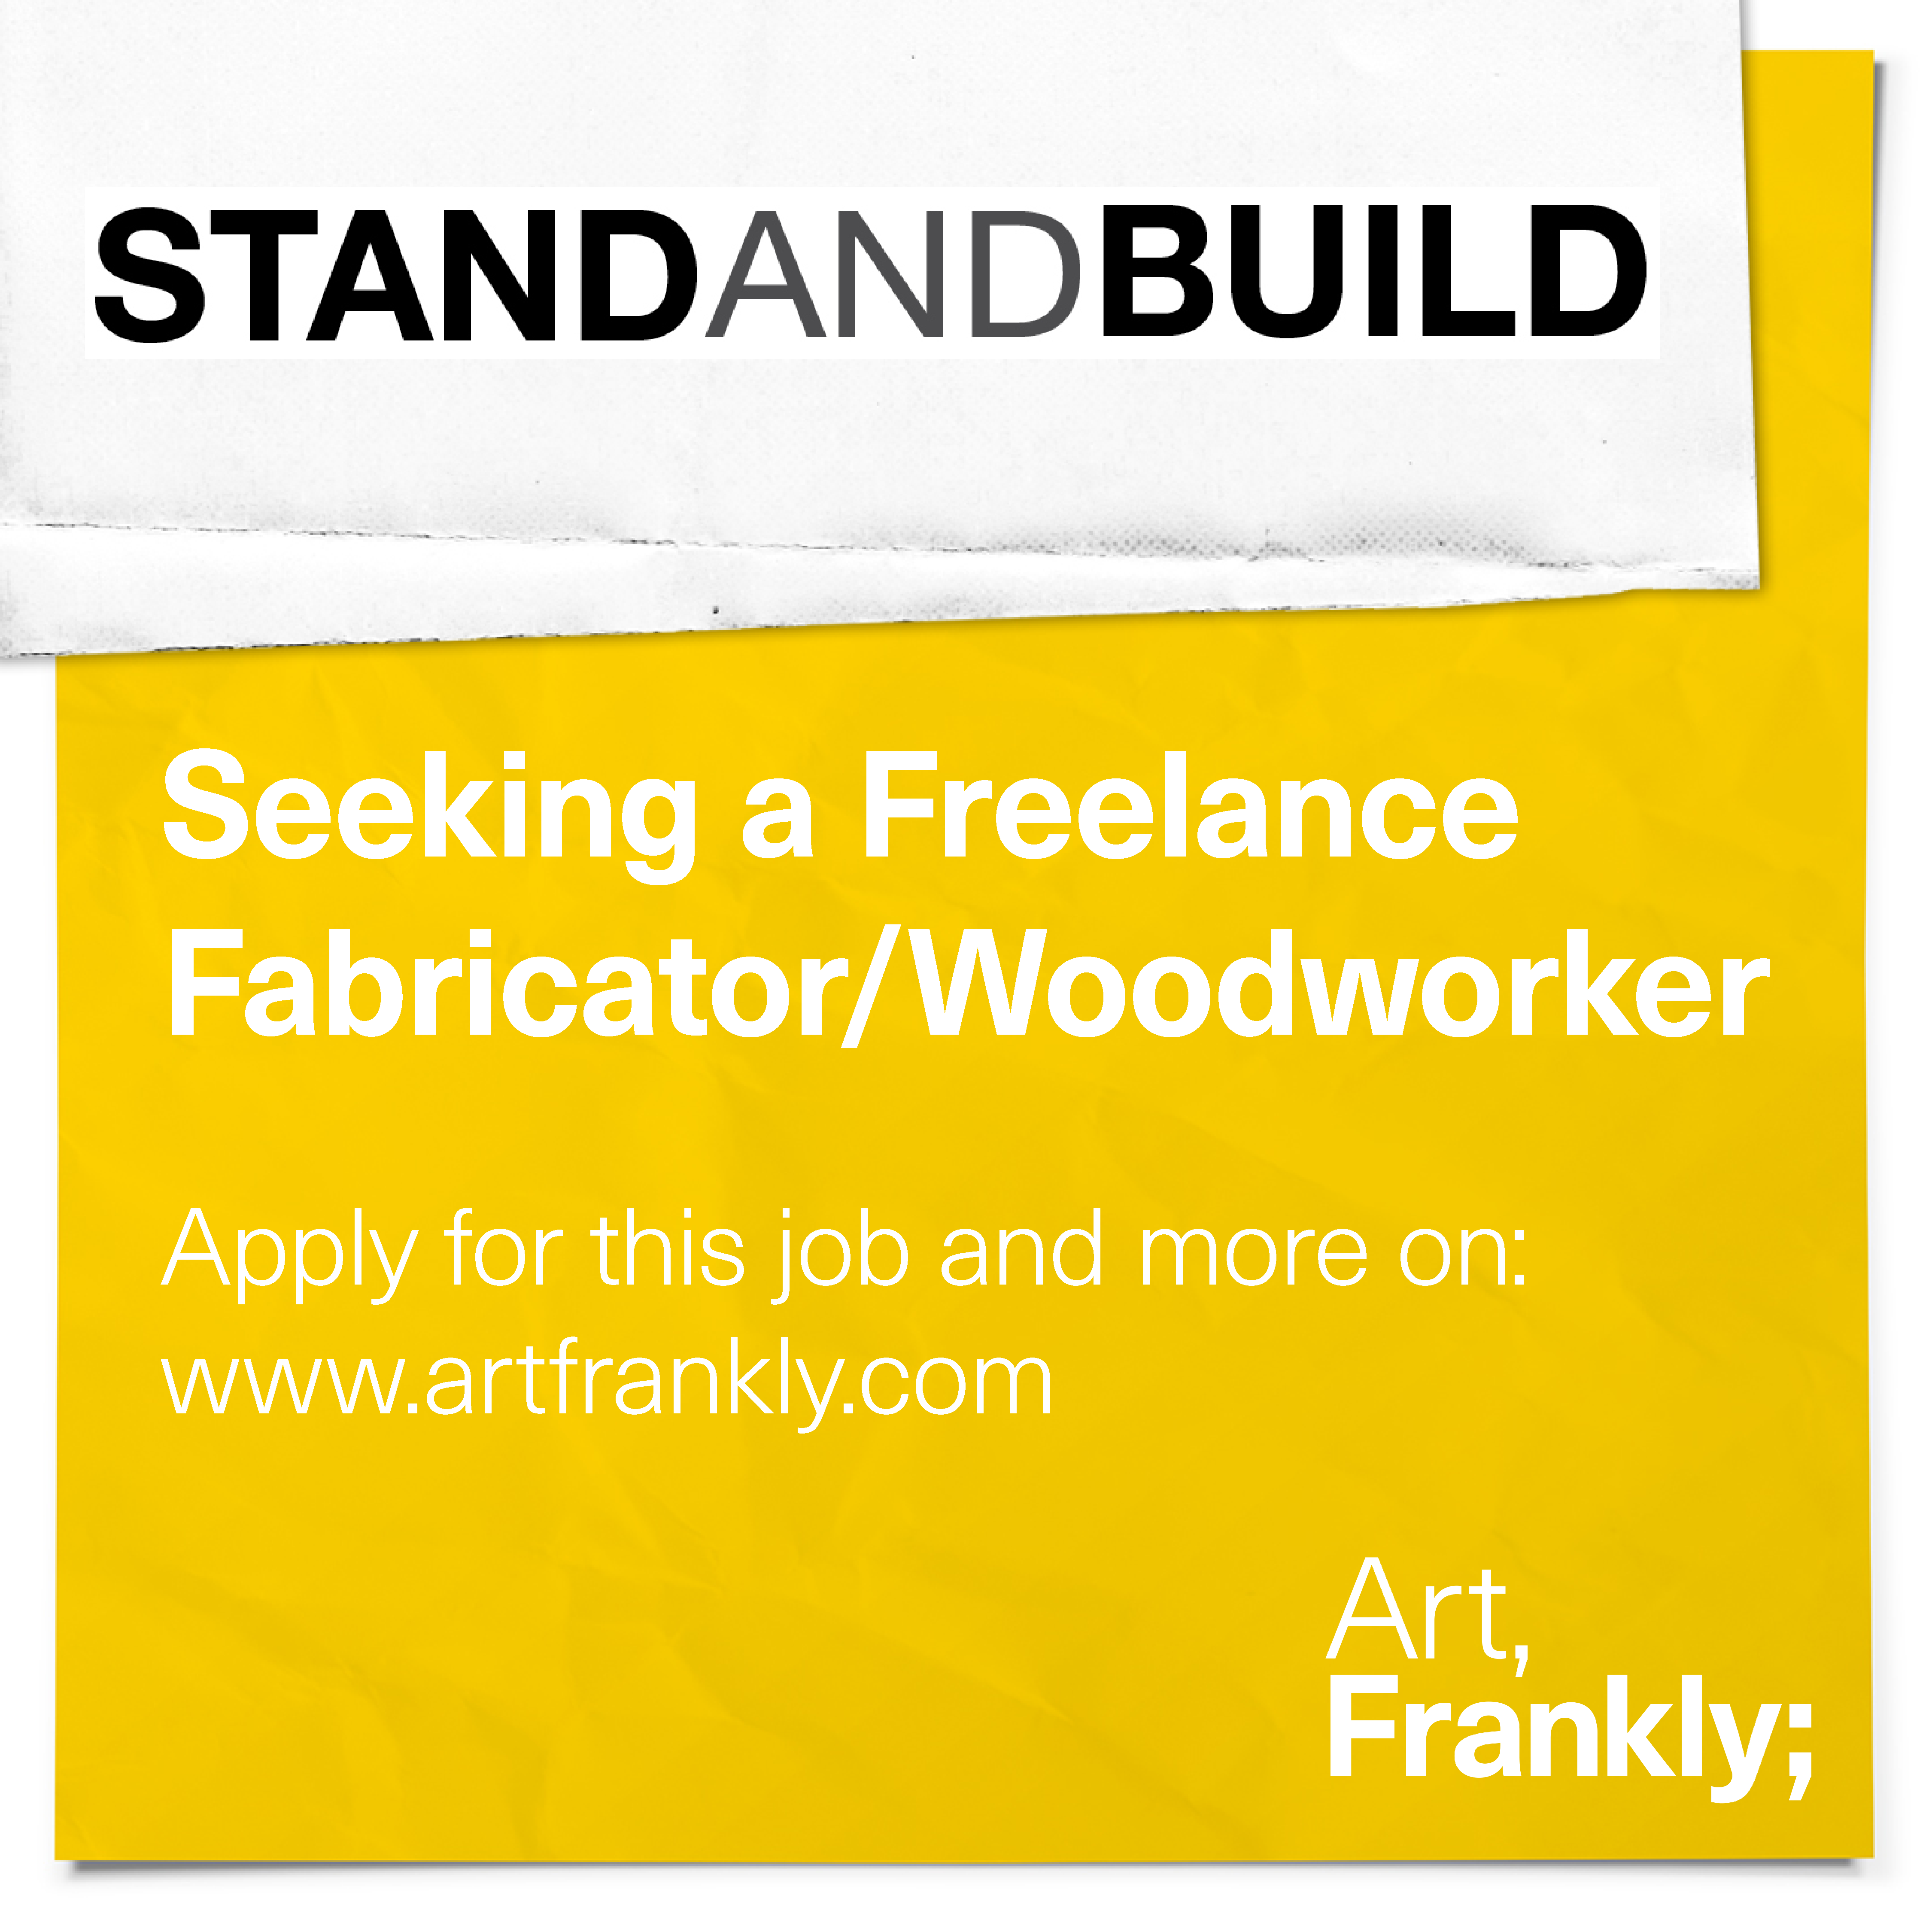 Stand and Build Freelance Fabricator/Woodworker